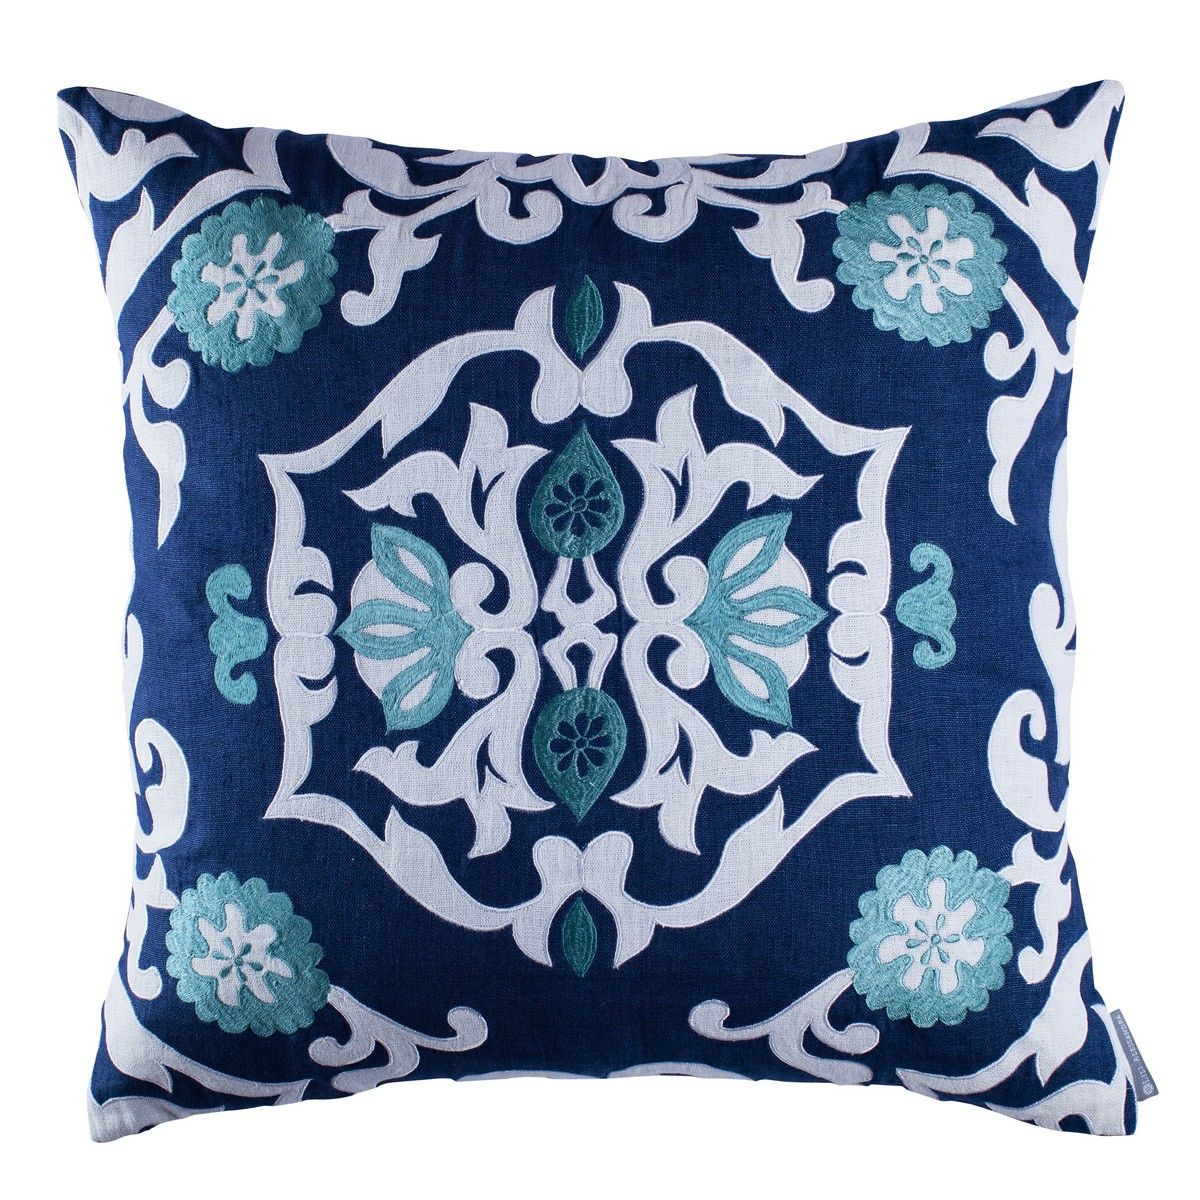 Small Square Decorative Pillows : Lili Alessandra Morocco - White Linen with Ocean Reef Applique Bedding